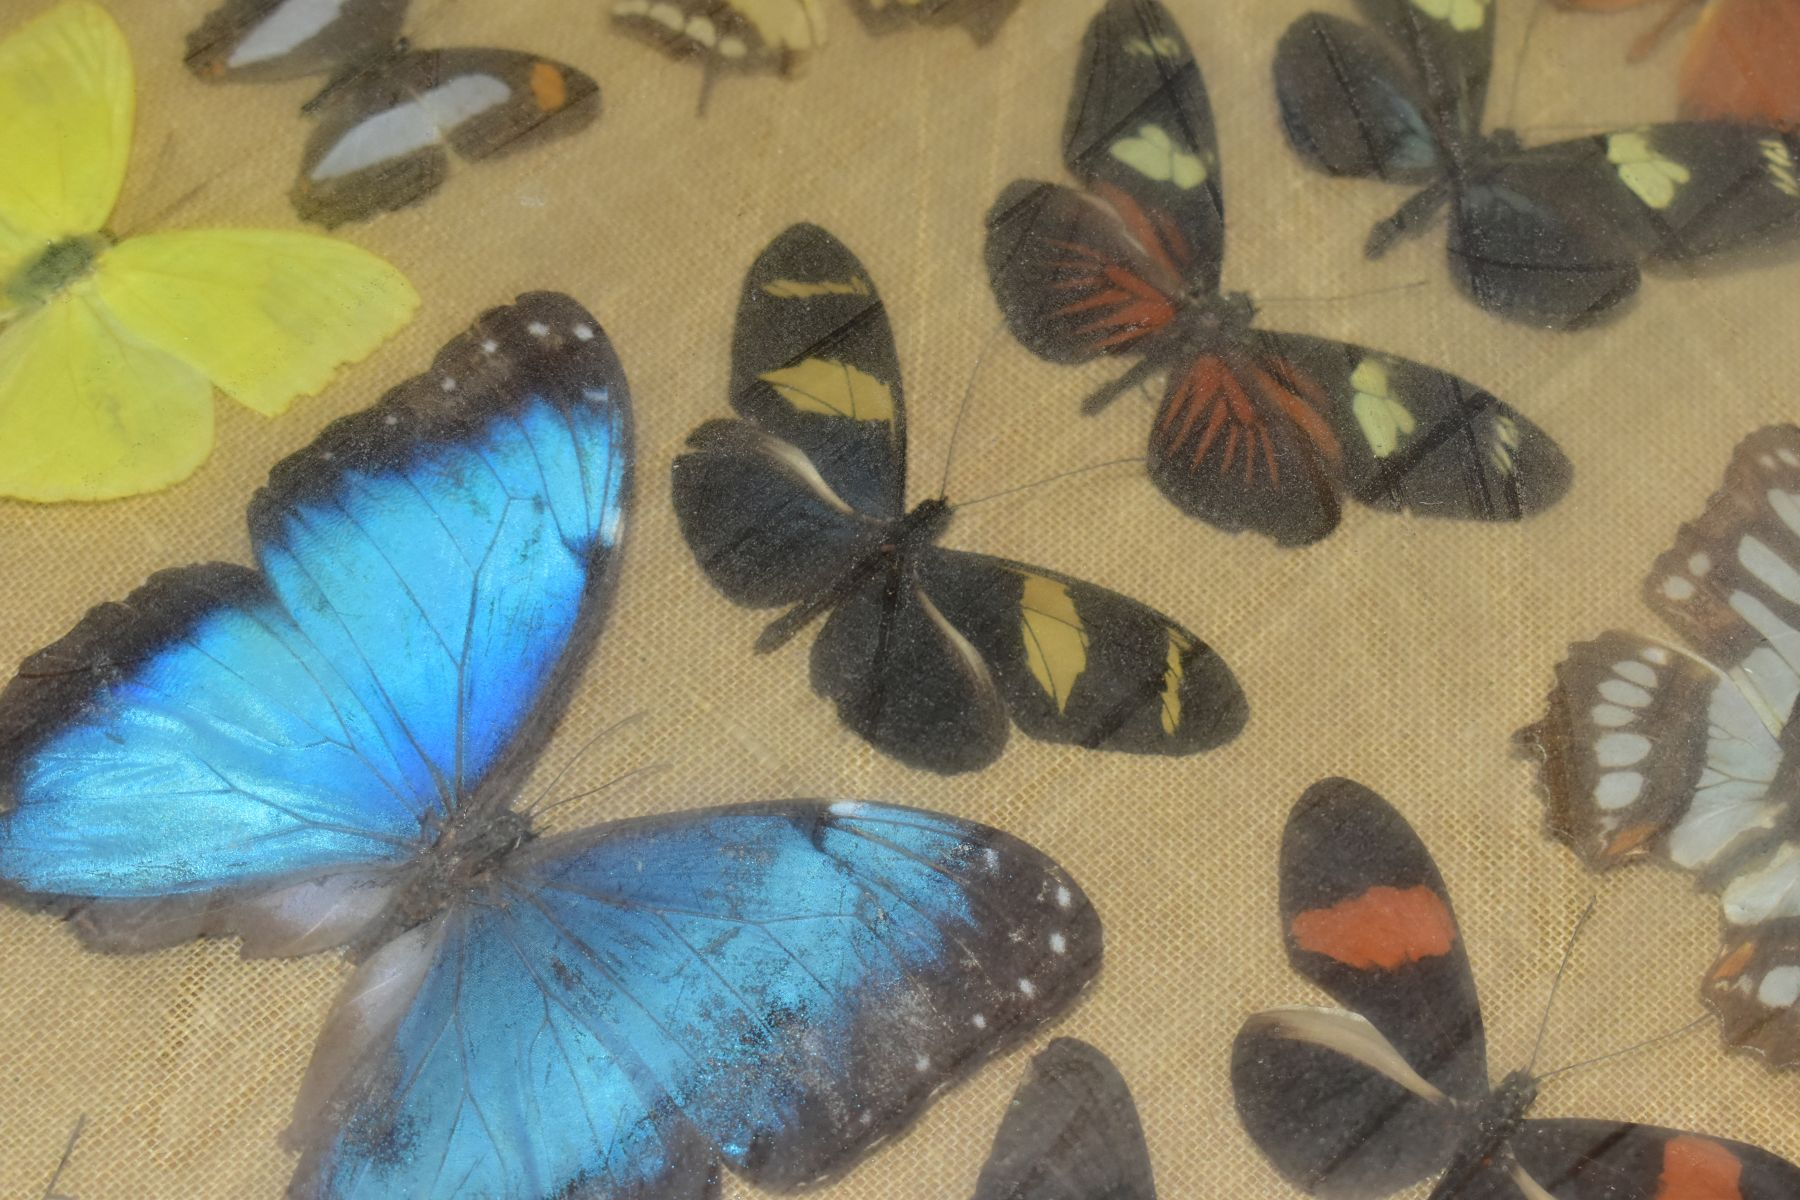 THREE DISPLAY CASES CONTAINING BUTTERFLIES AND MOTH SPECIMENS, together with four circular framed - Image 5 of 10